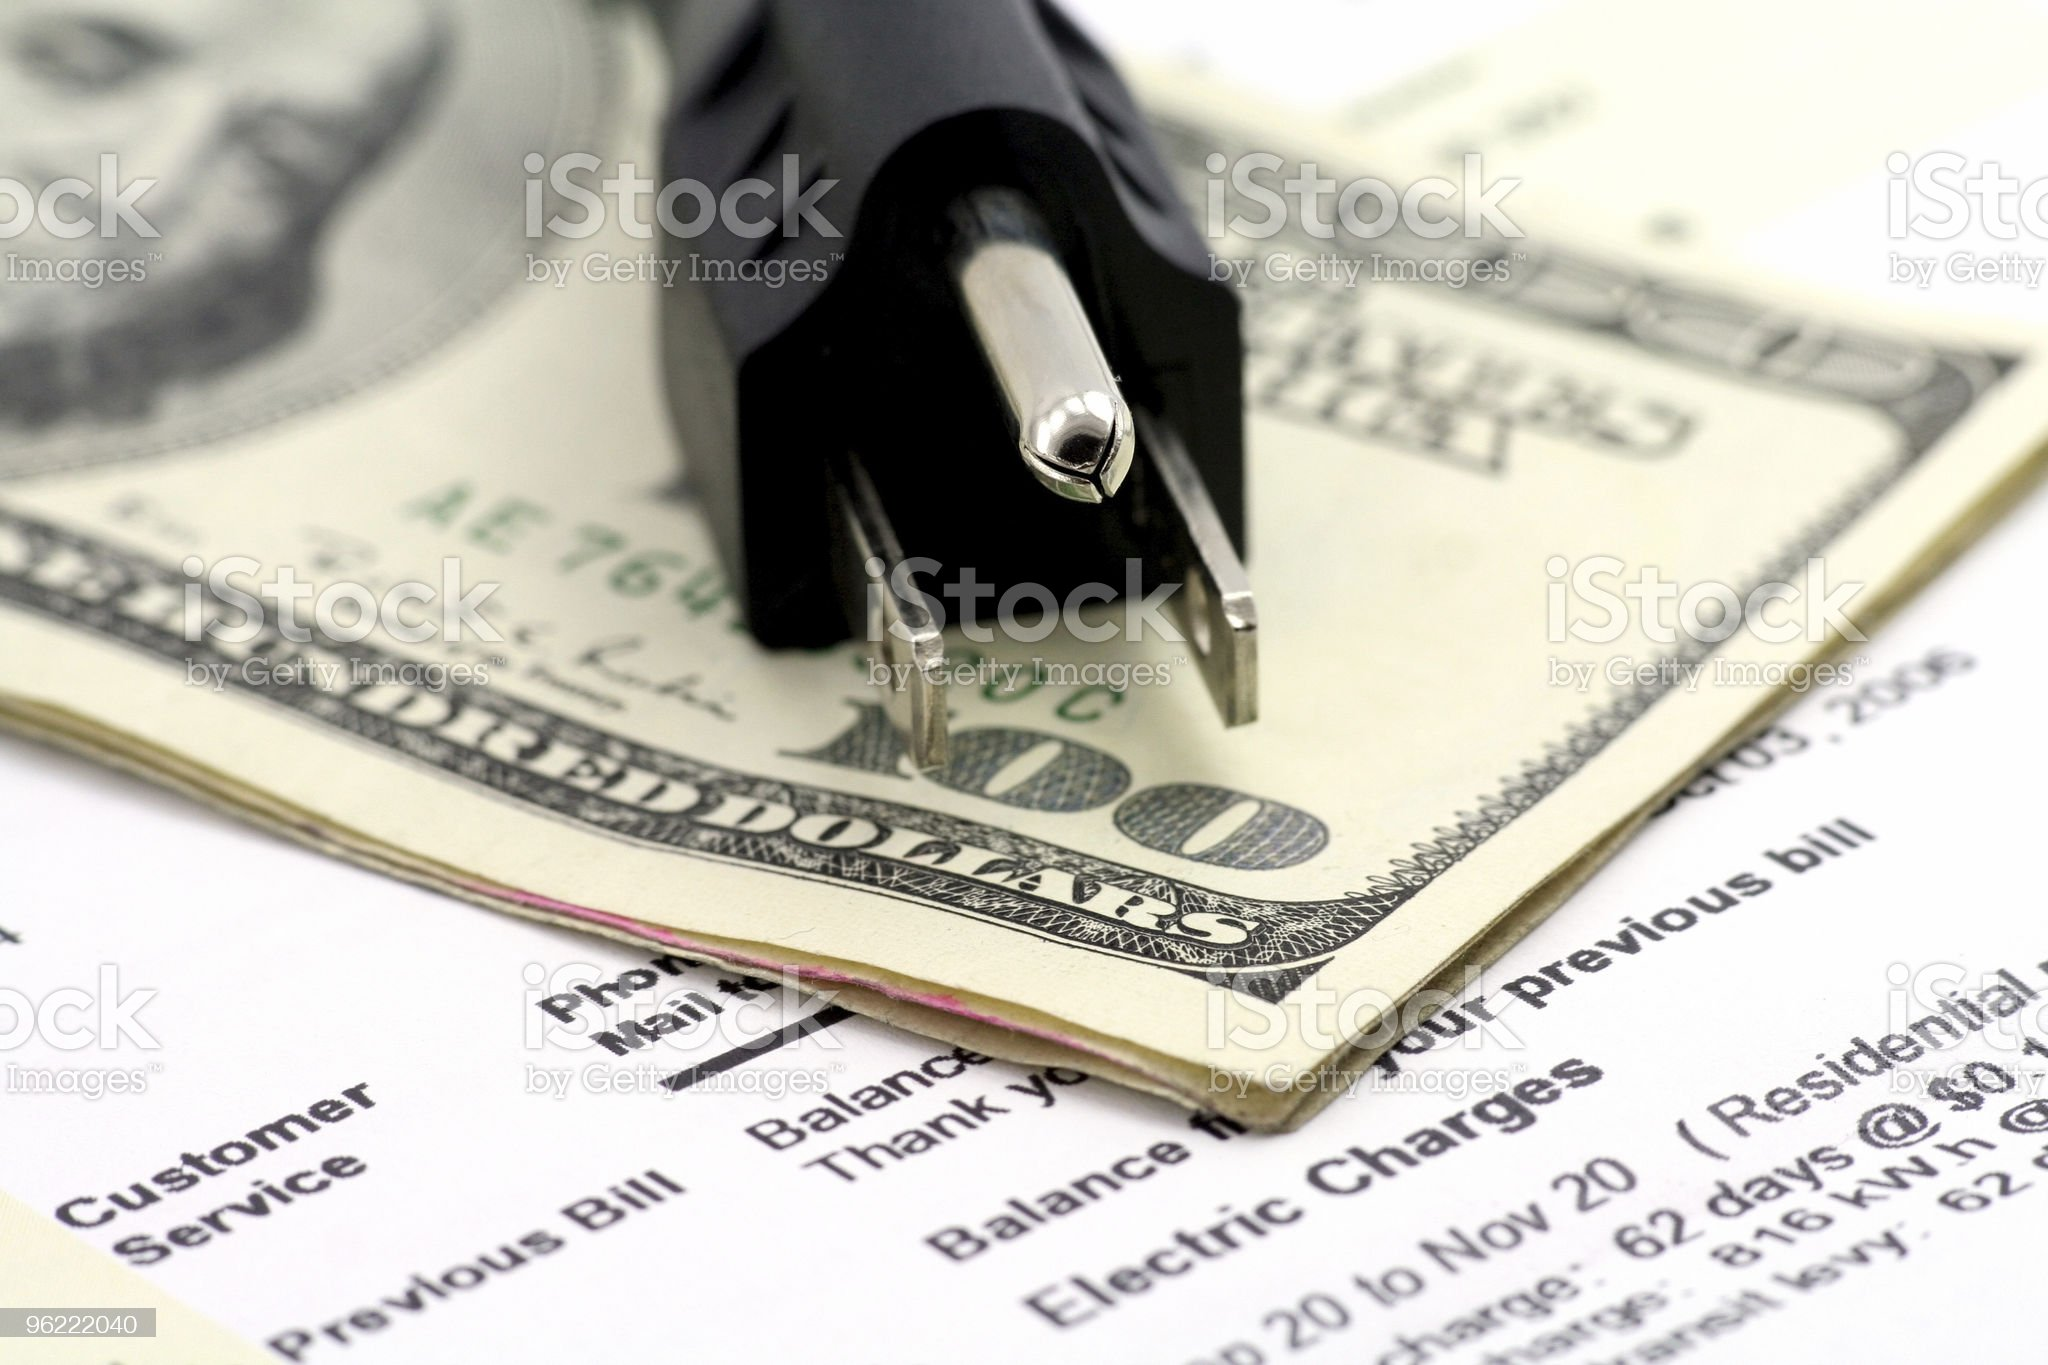 concept of expensive energy bill royalty-free stock photo